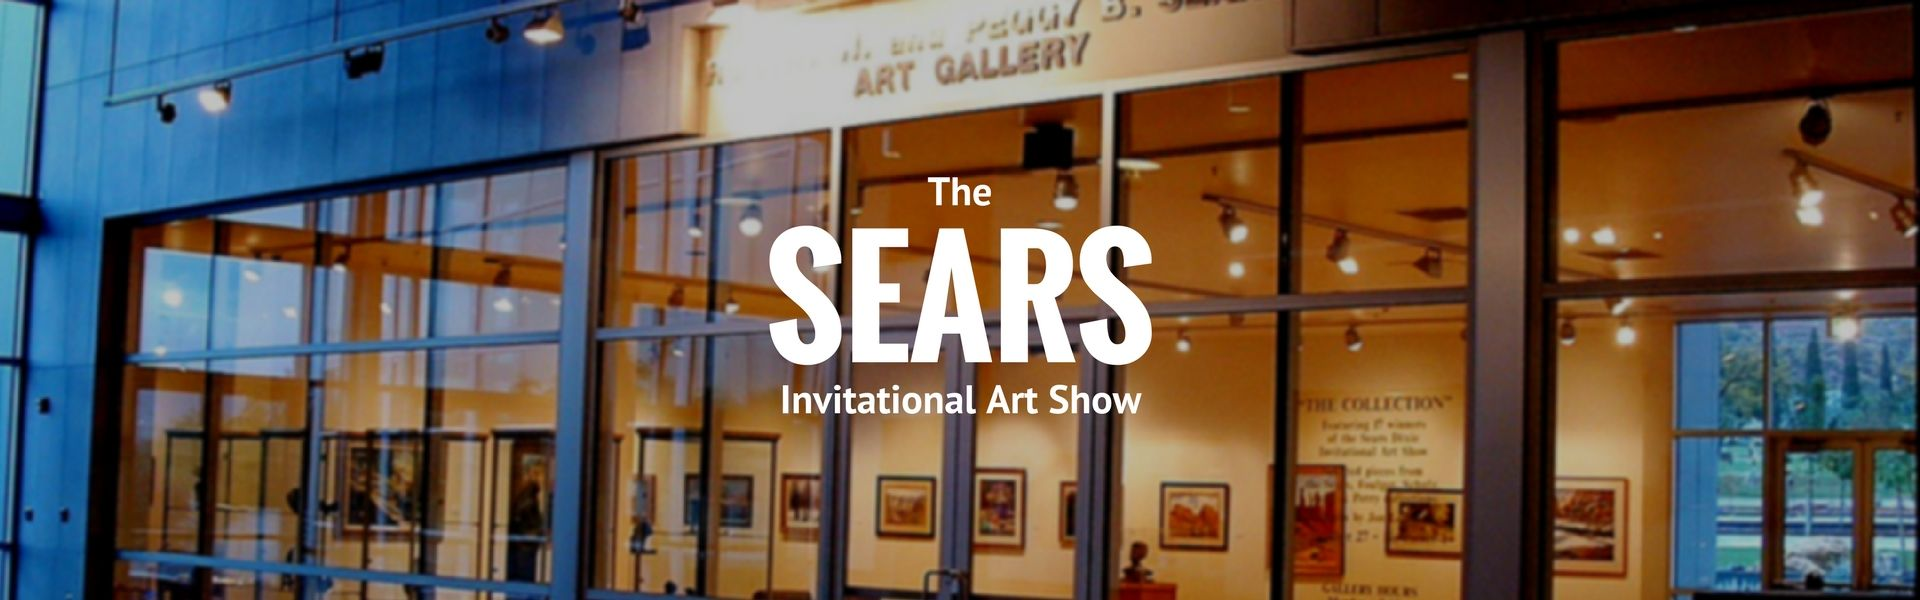 30 Years of the Sears Invitational Art Show